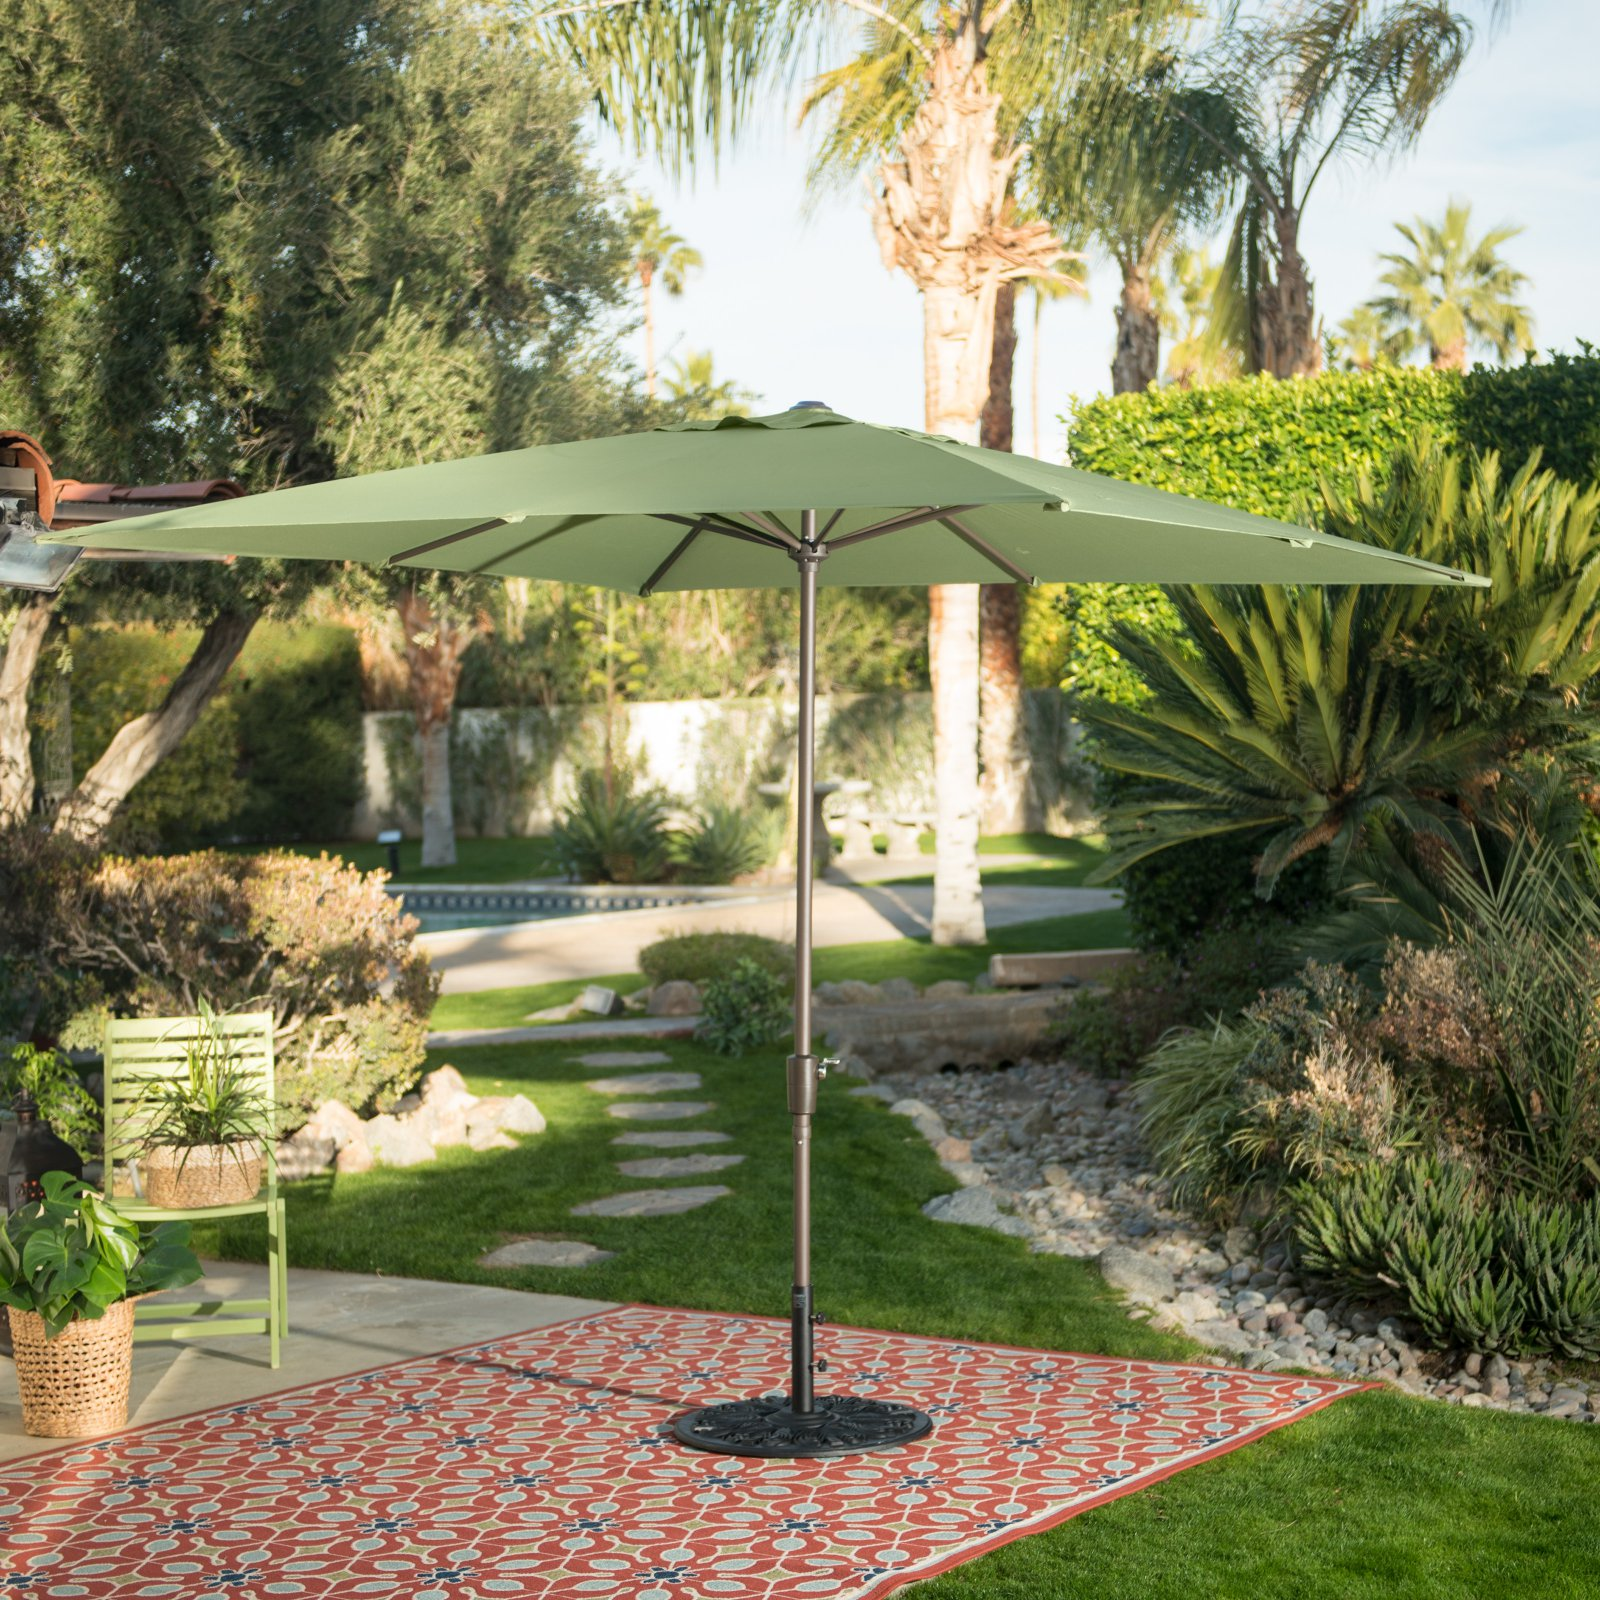 Belham Living 8.2 ft. Square Patio Umbrella